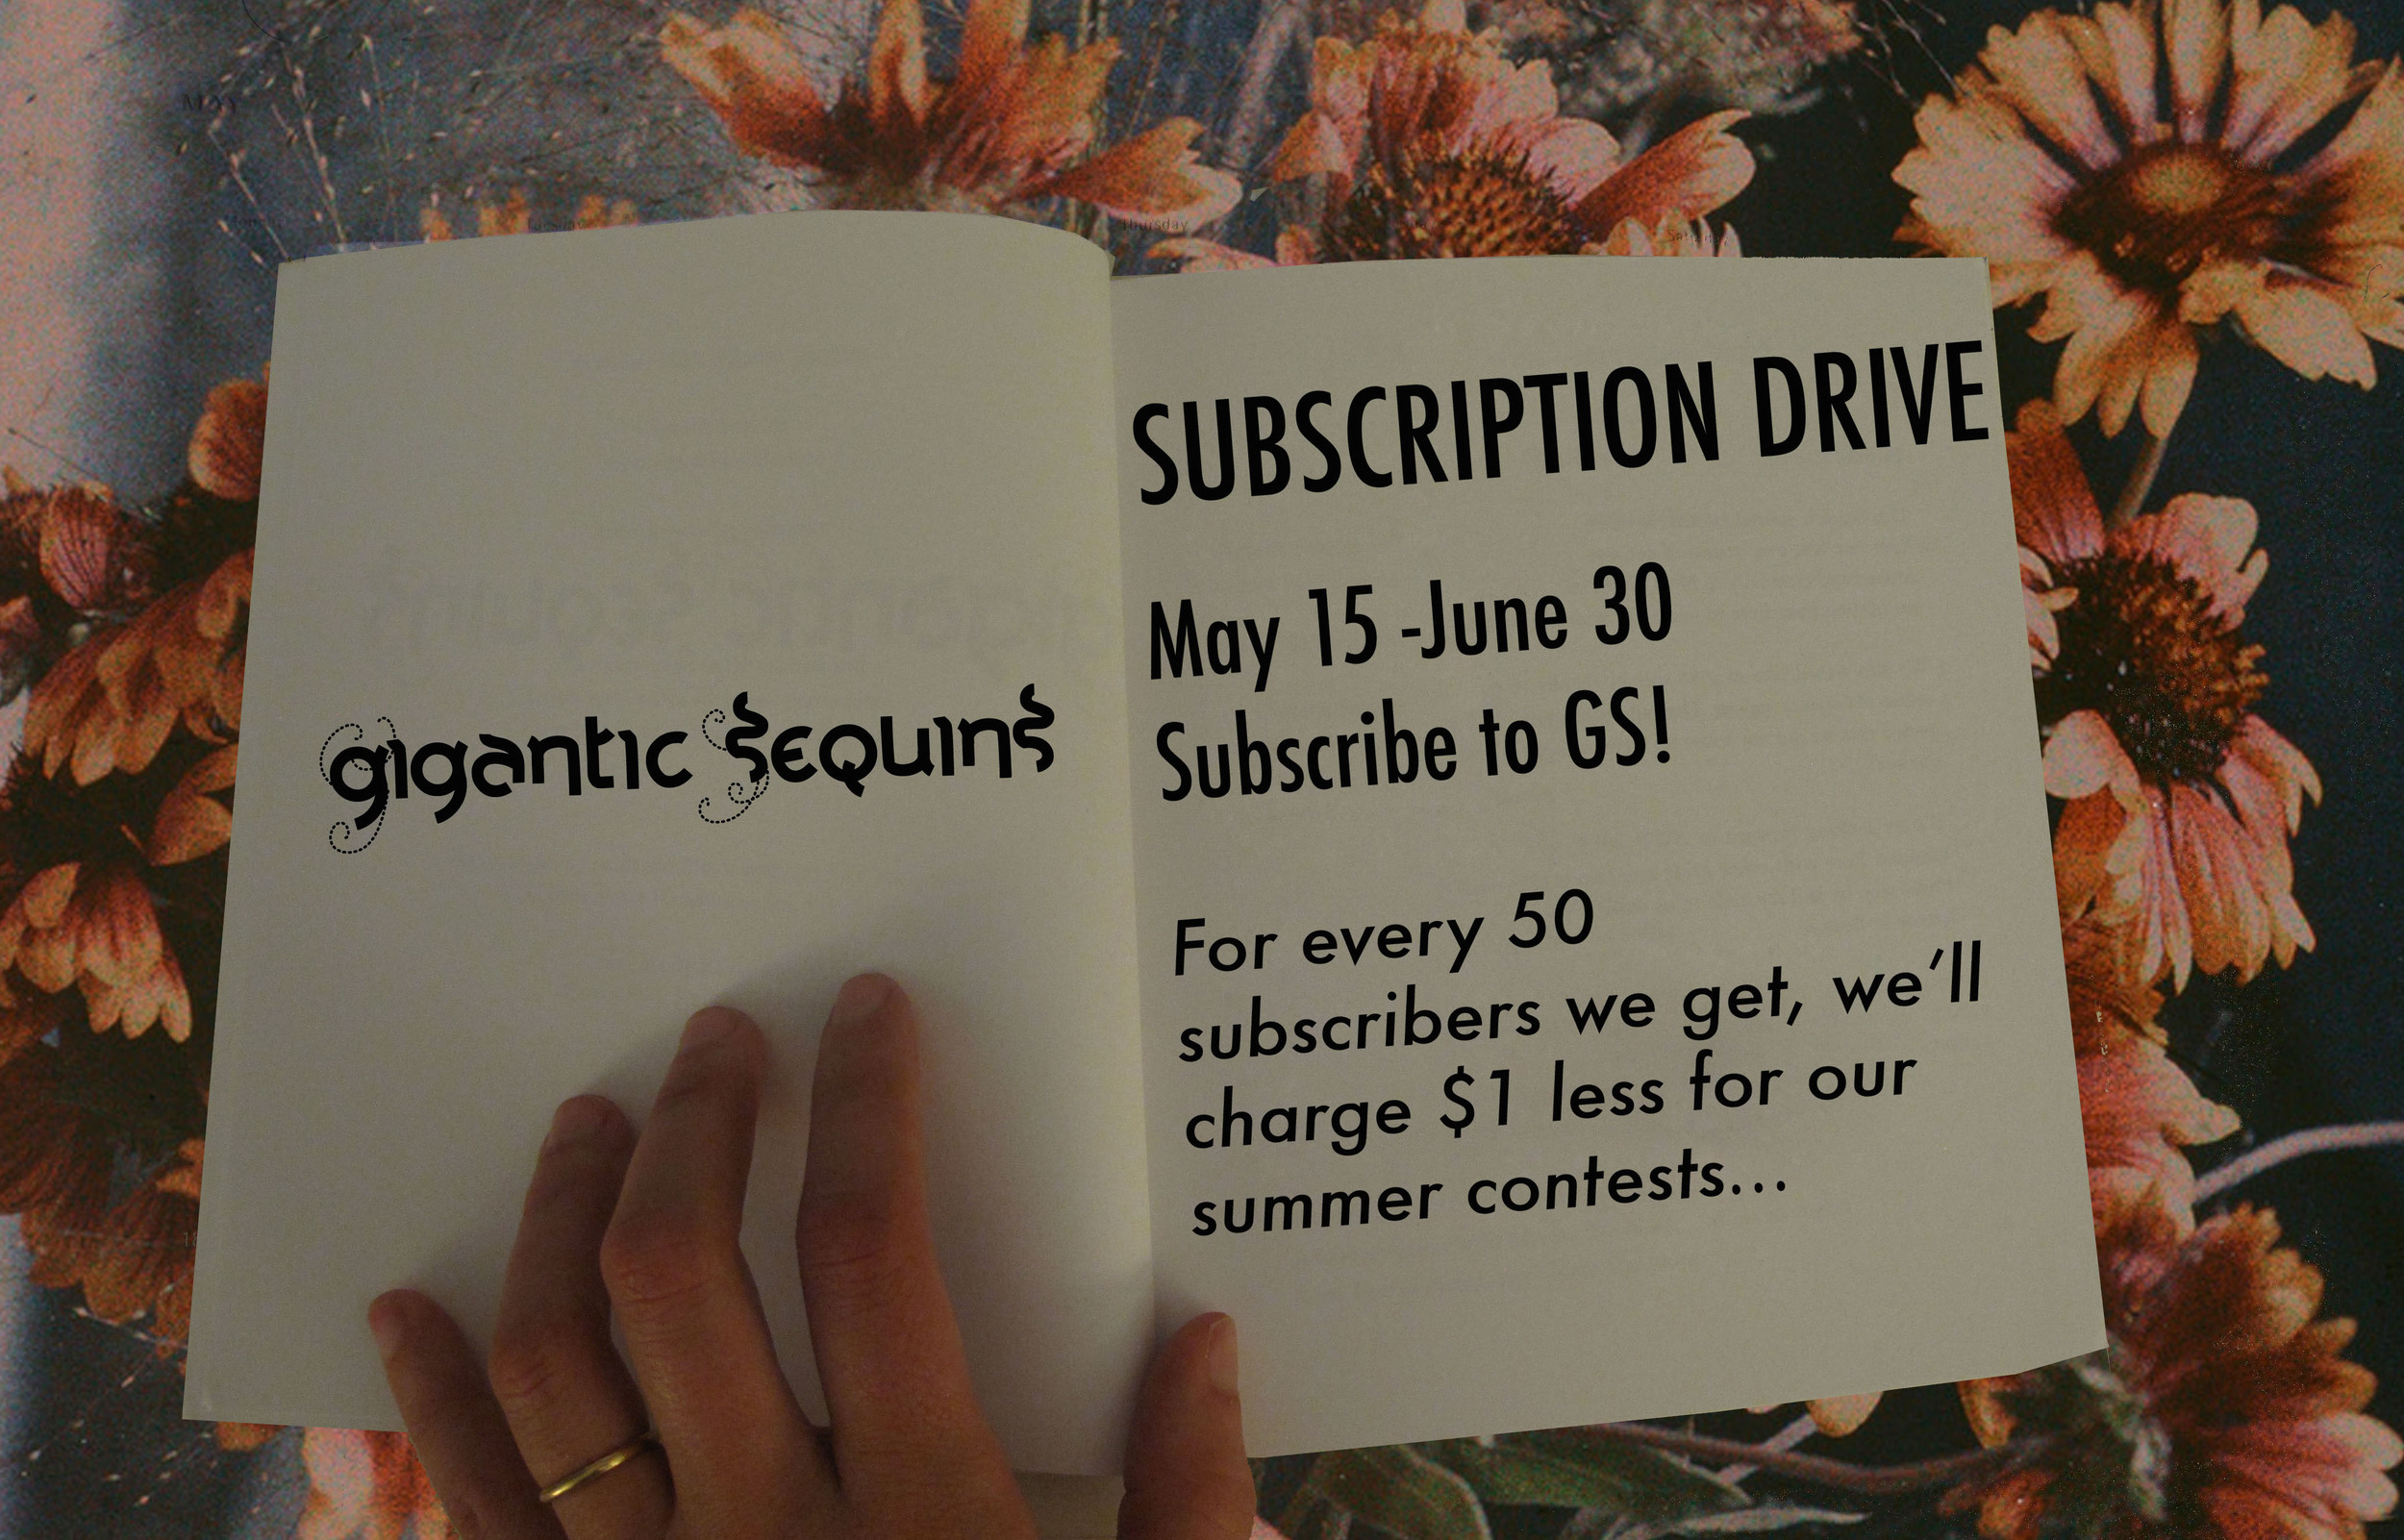 Gigantic Sequins subscription drive flyer.